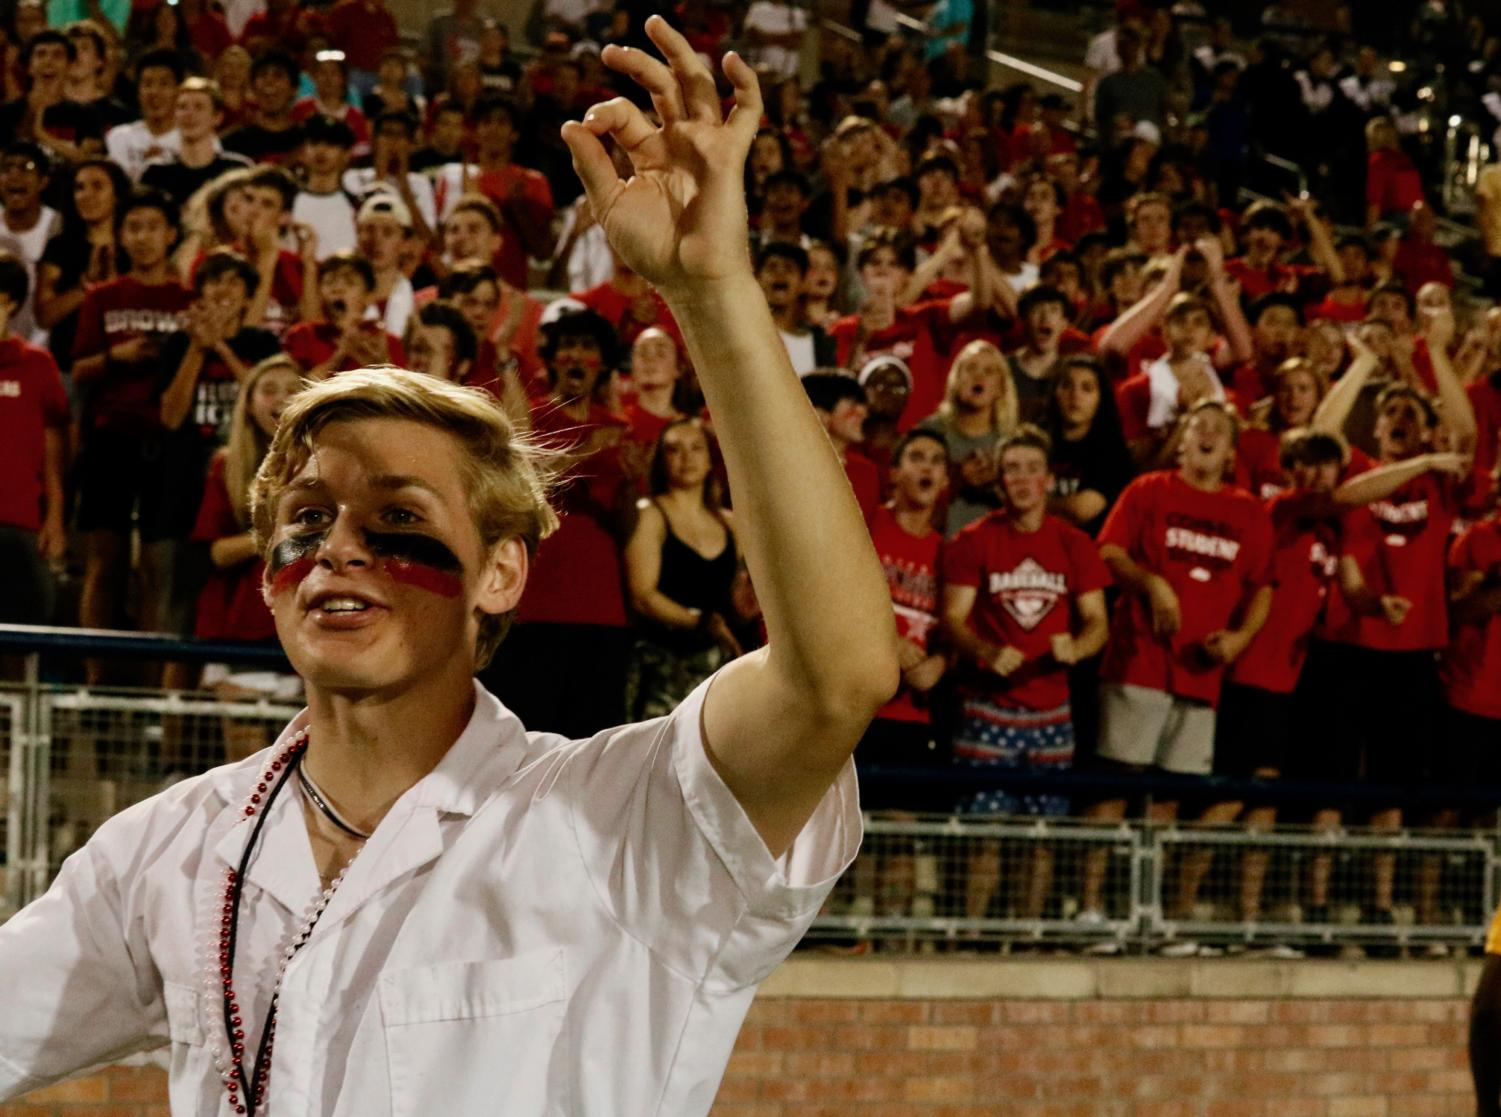 Coppell High School senior plunger boy Leo Swaldi holds up a third down sign during Coppell's game against Allen on Sept. 13 at Eagle Stadium. Swaldi takes rigorous academic courses and is the senior class president in addition to the plunger boy.